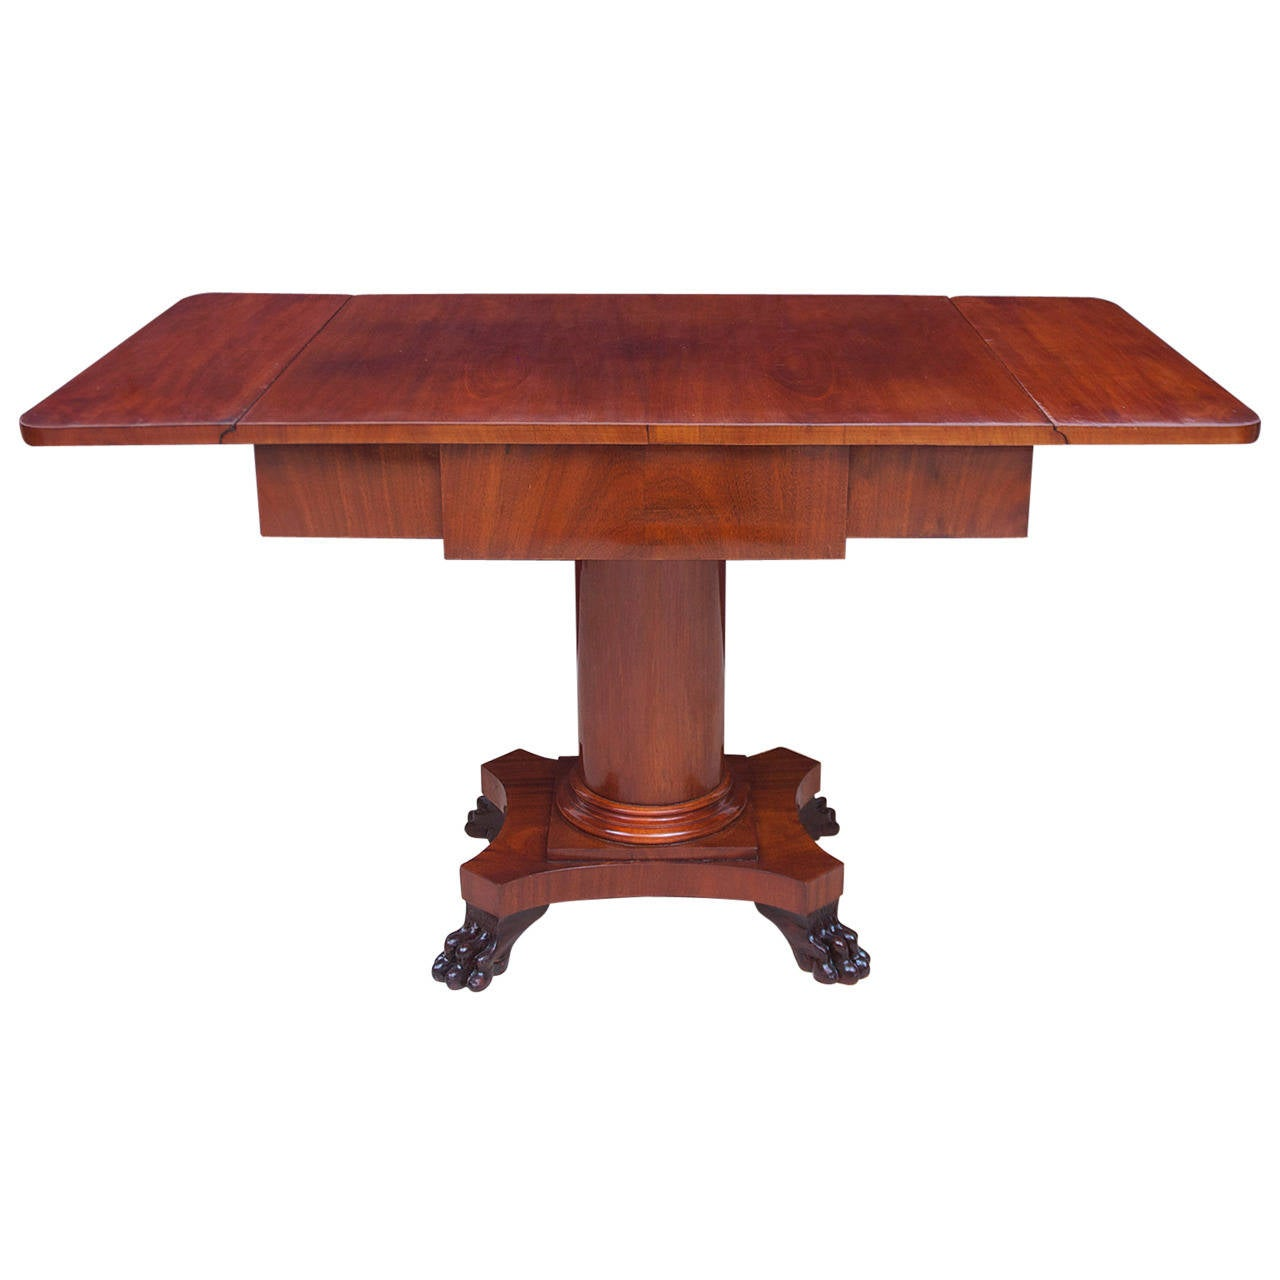 Karl Johan Biedermeier Writing Desk or Sofa Table in Mahogany, Sweden, circa 1840 For Sale